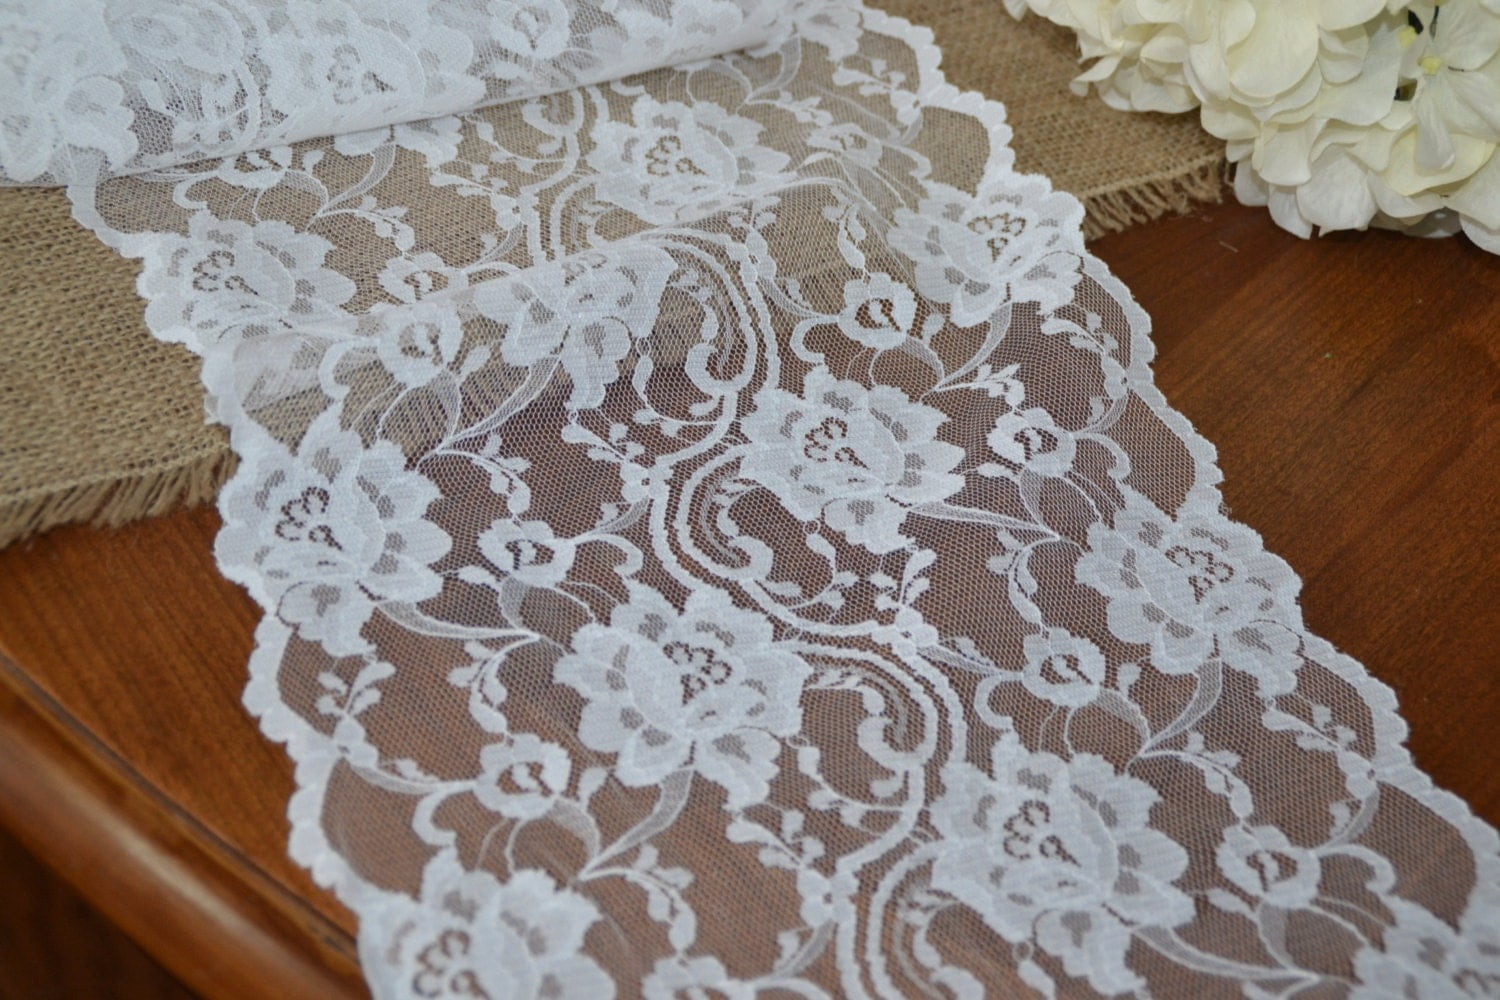 5 Yards 10 Wide White Lace Trim Wide Lace Table Runner